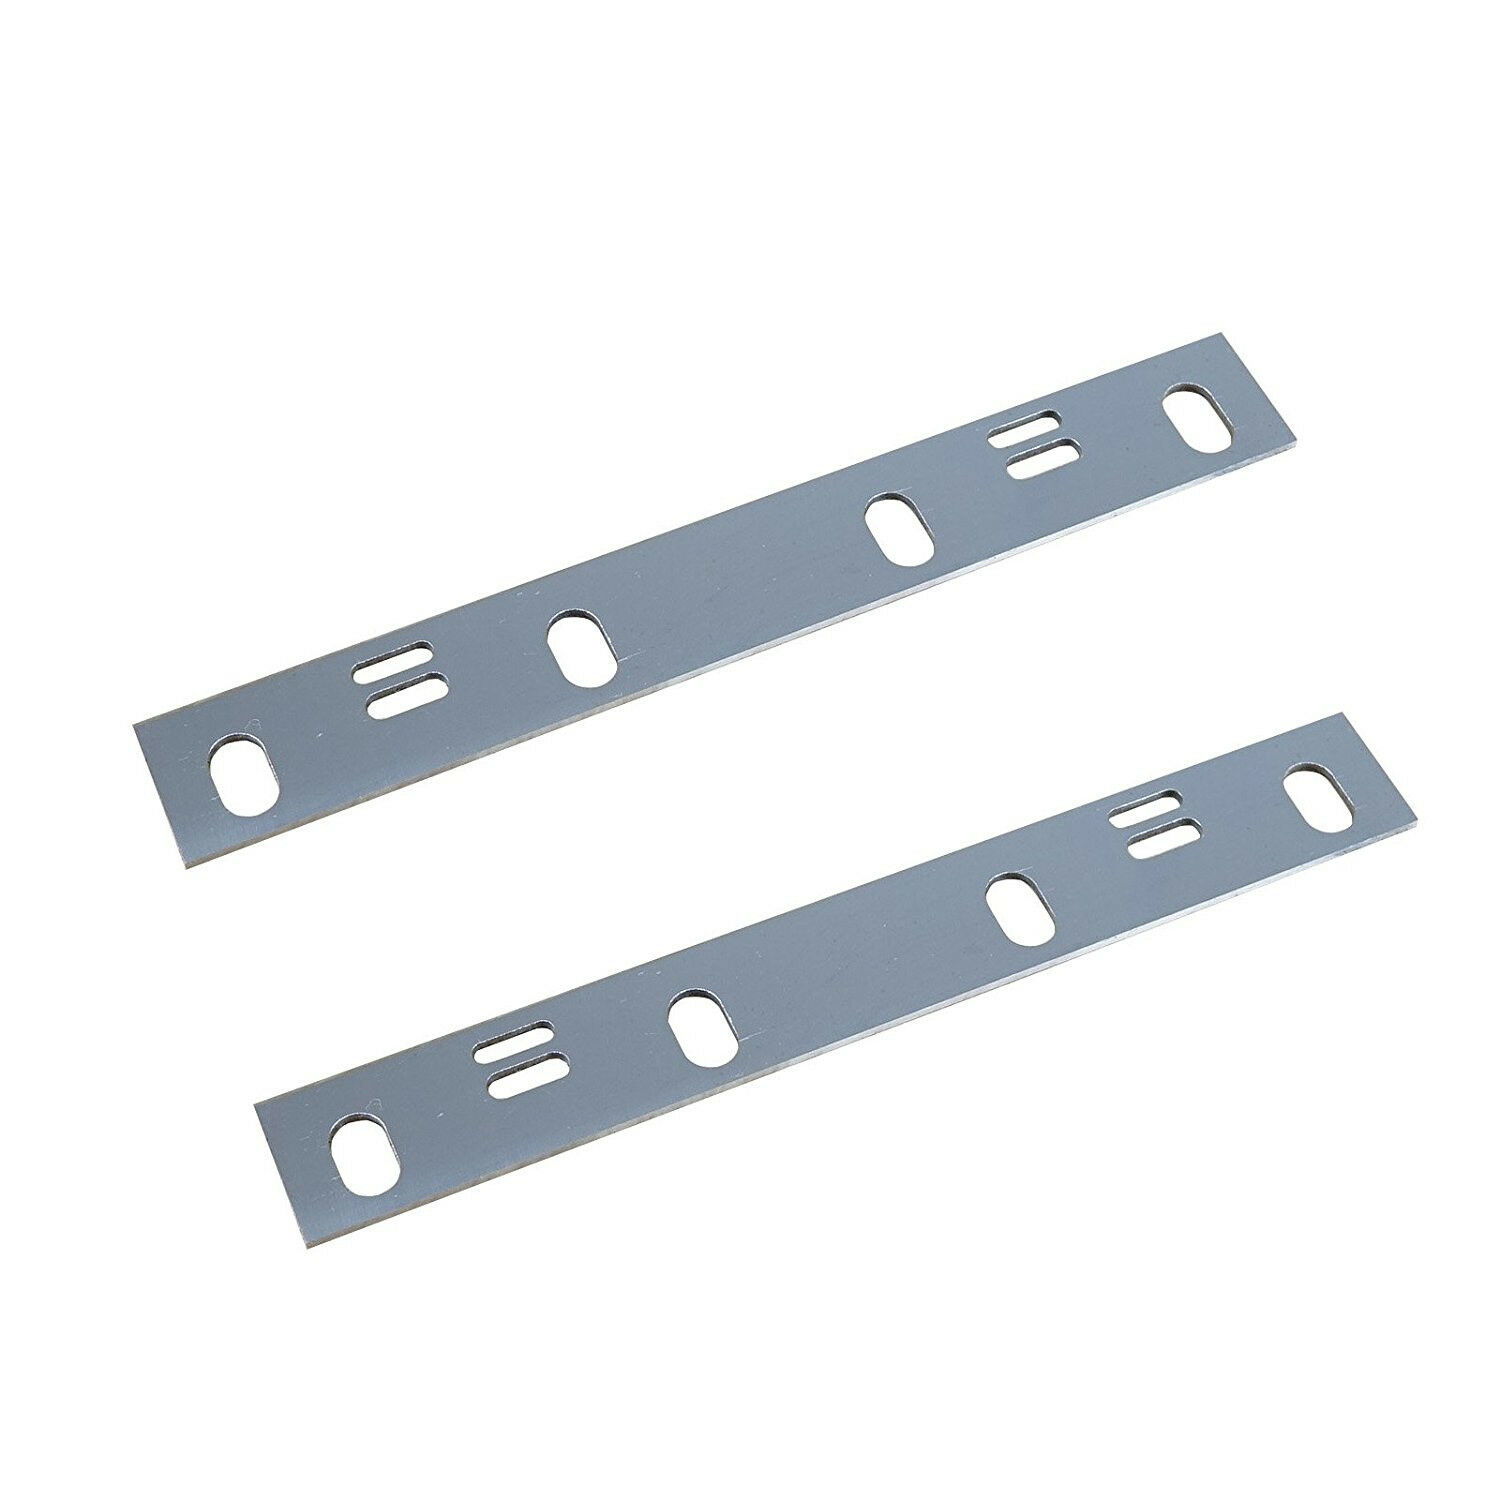 HSS Planer Blades replacing SIP 01455 Knives S701S4